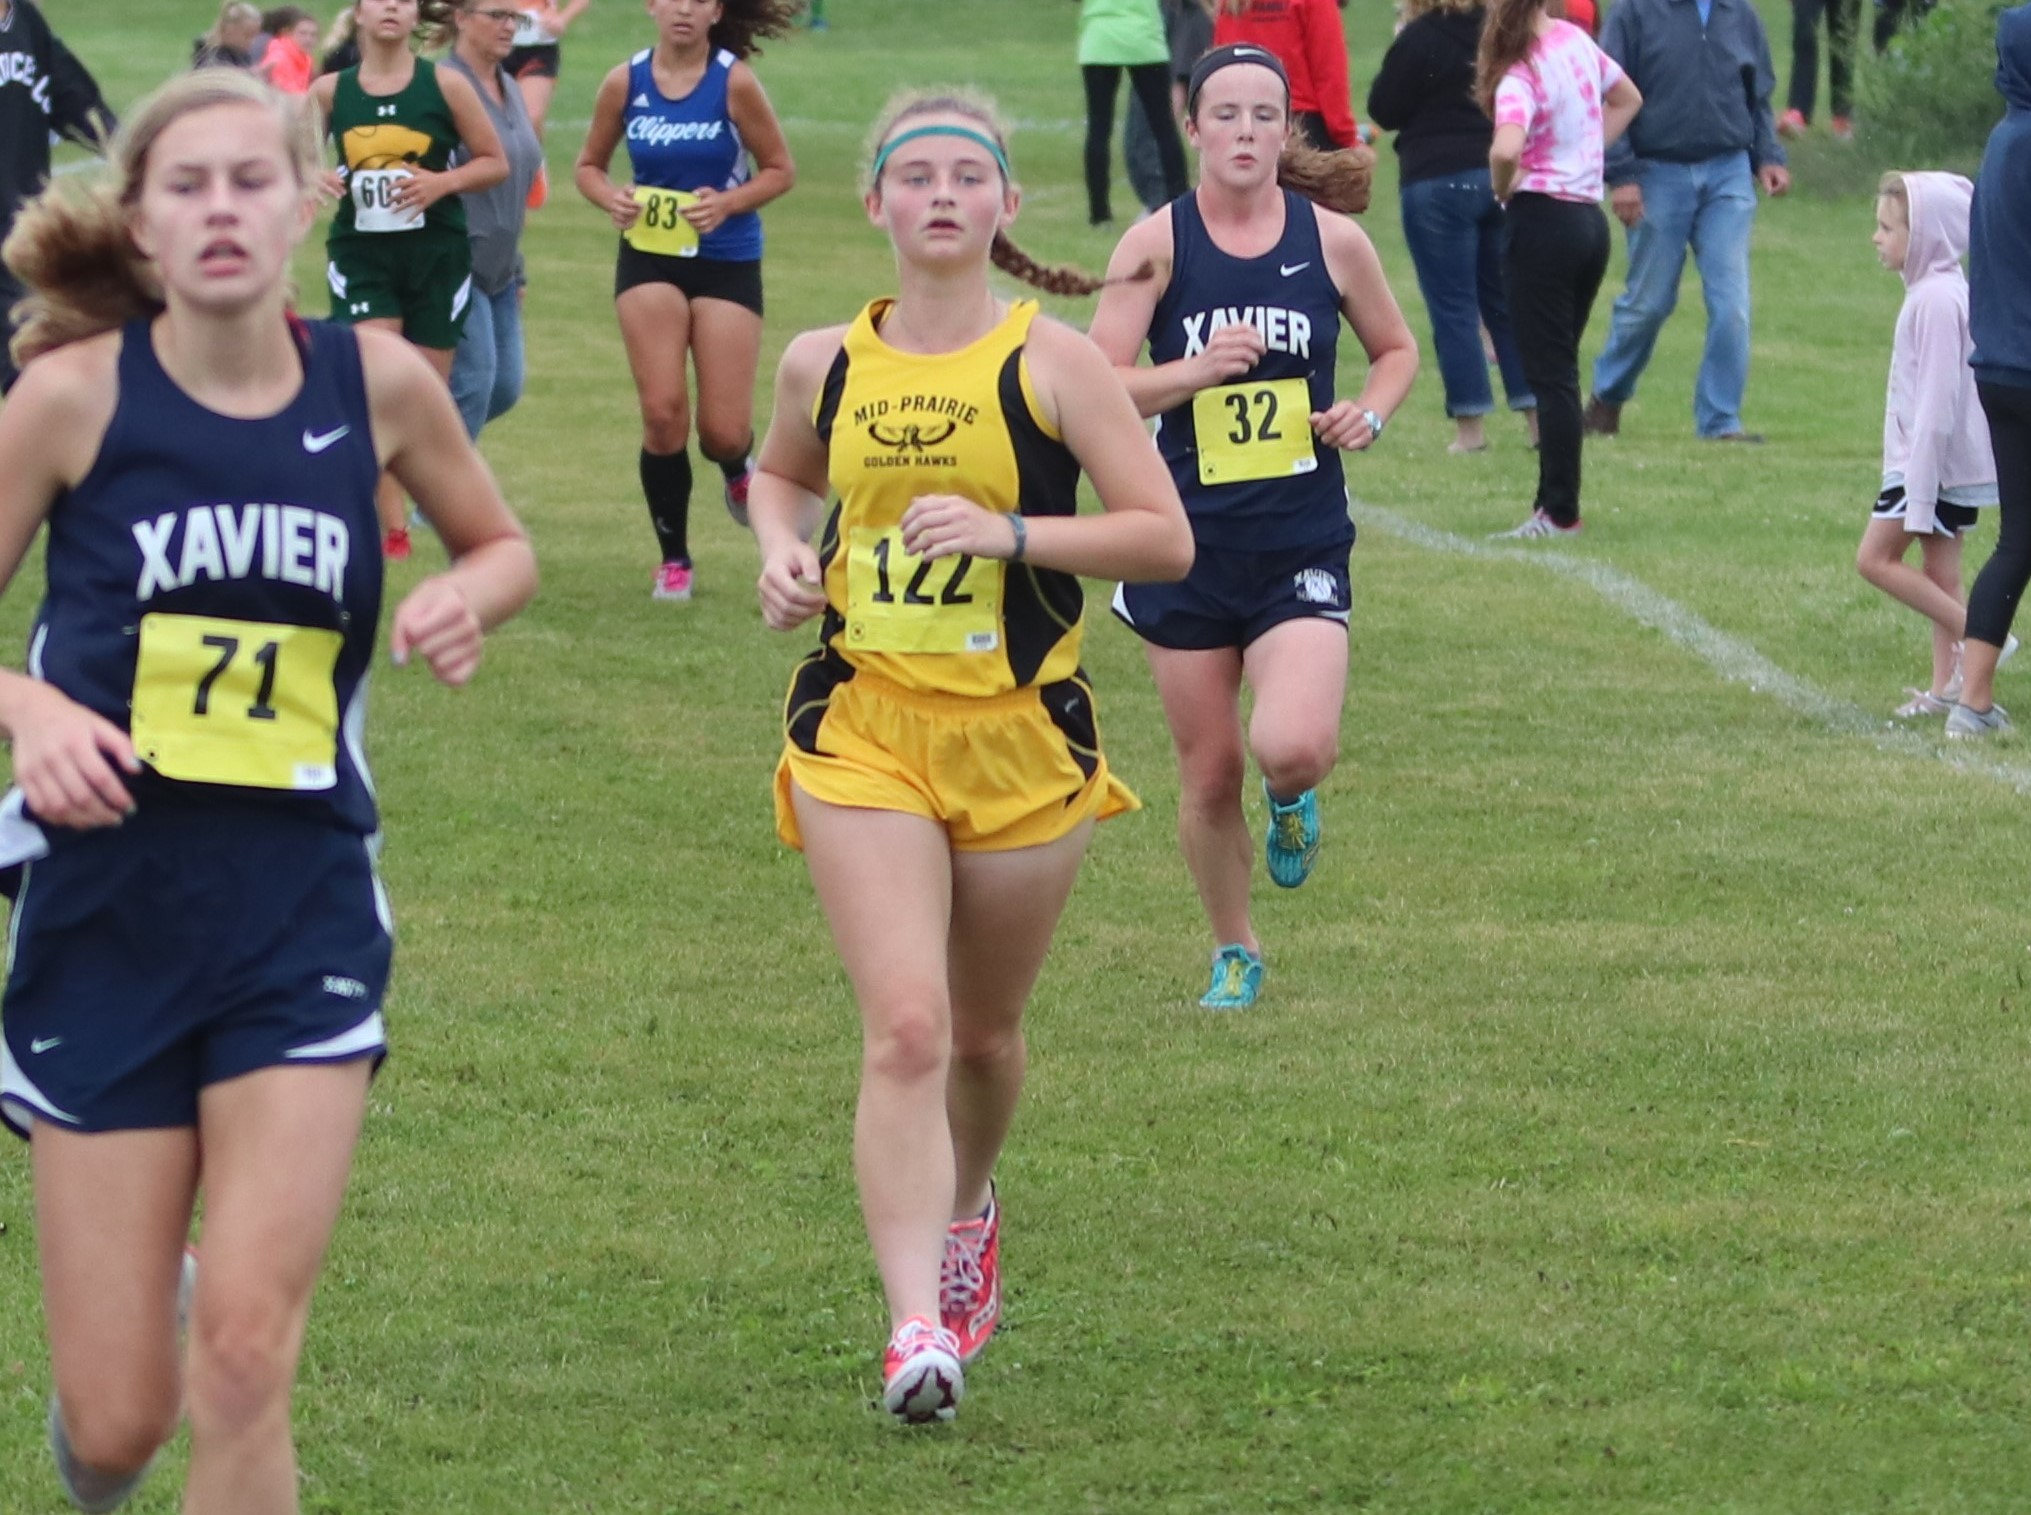 Shelby running at the cross country meet